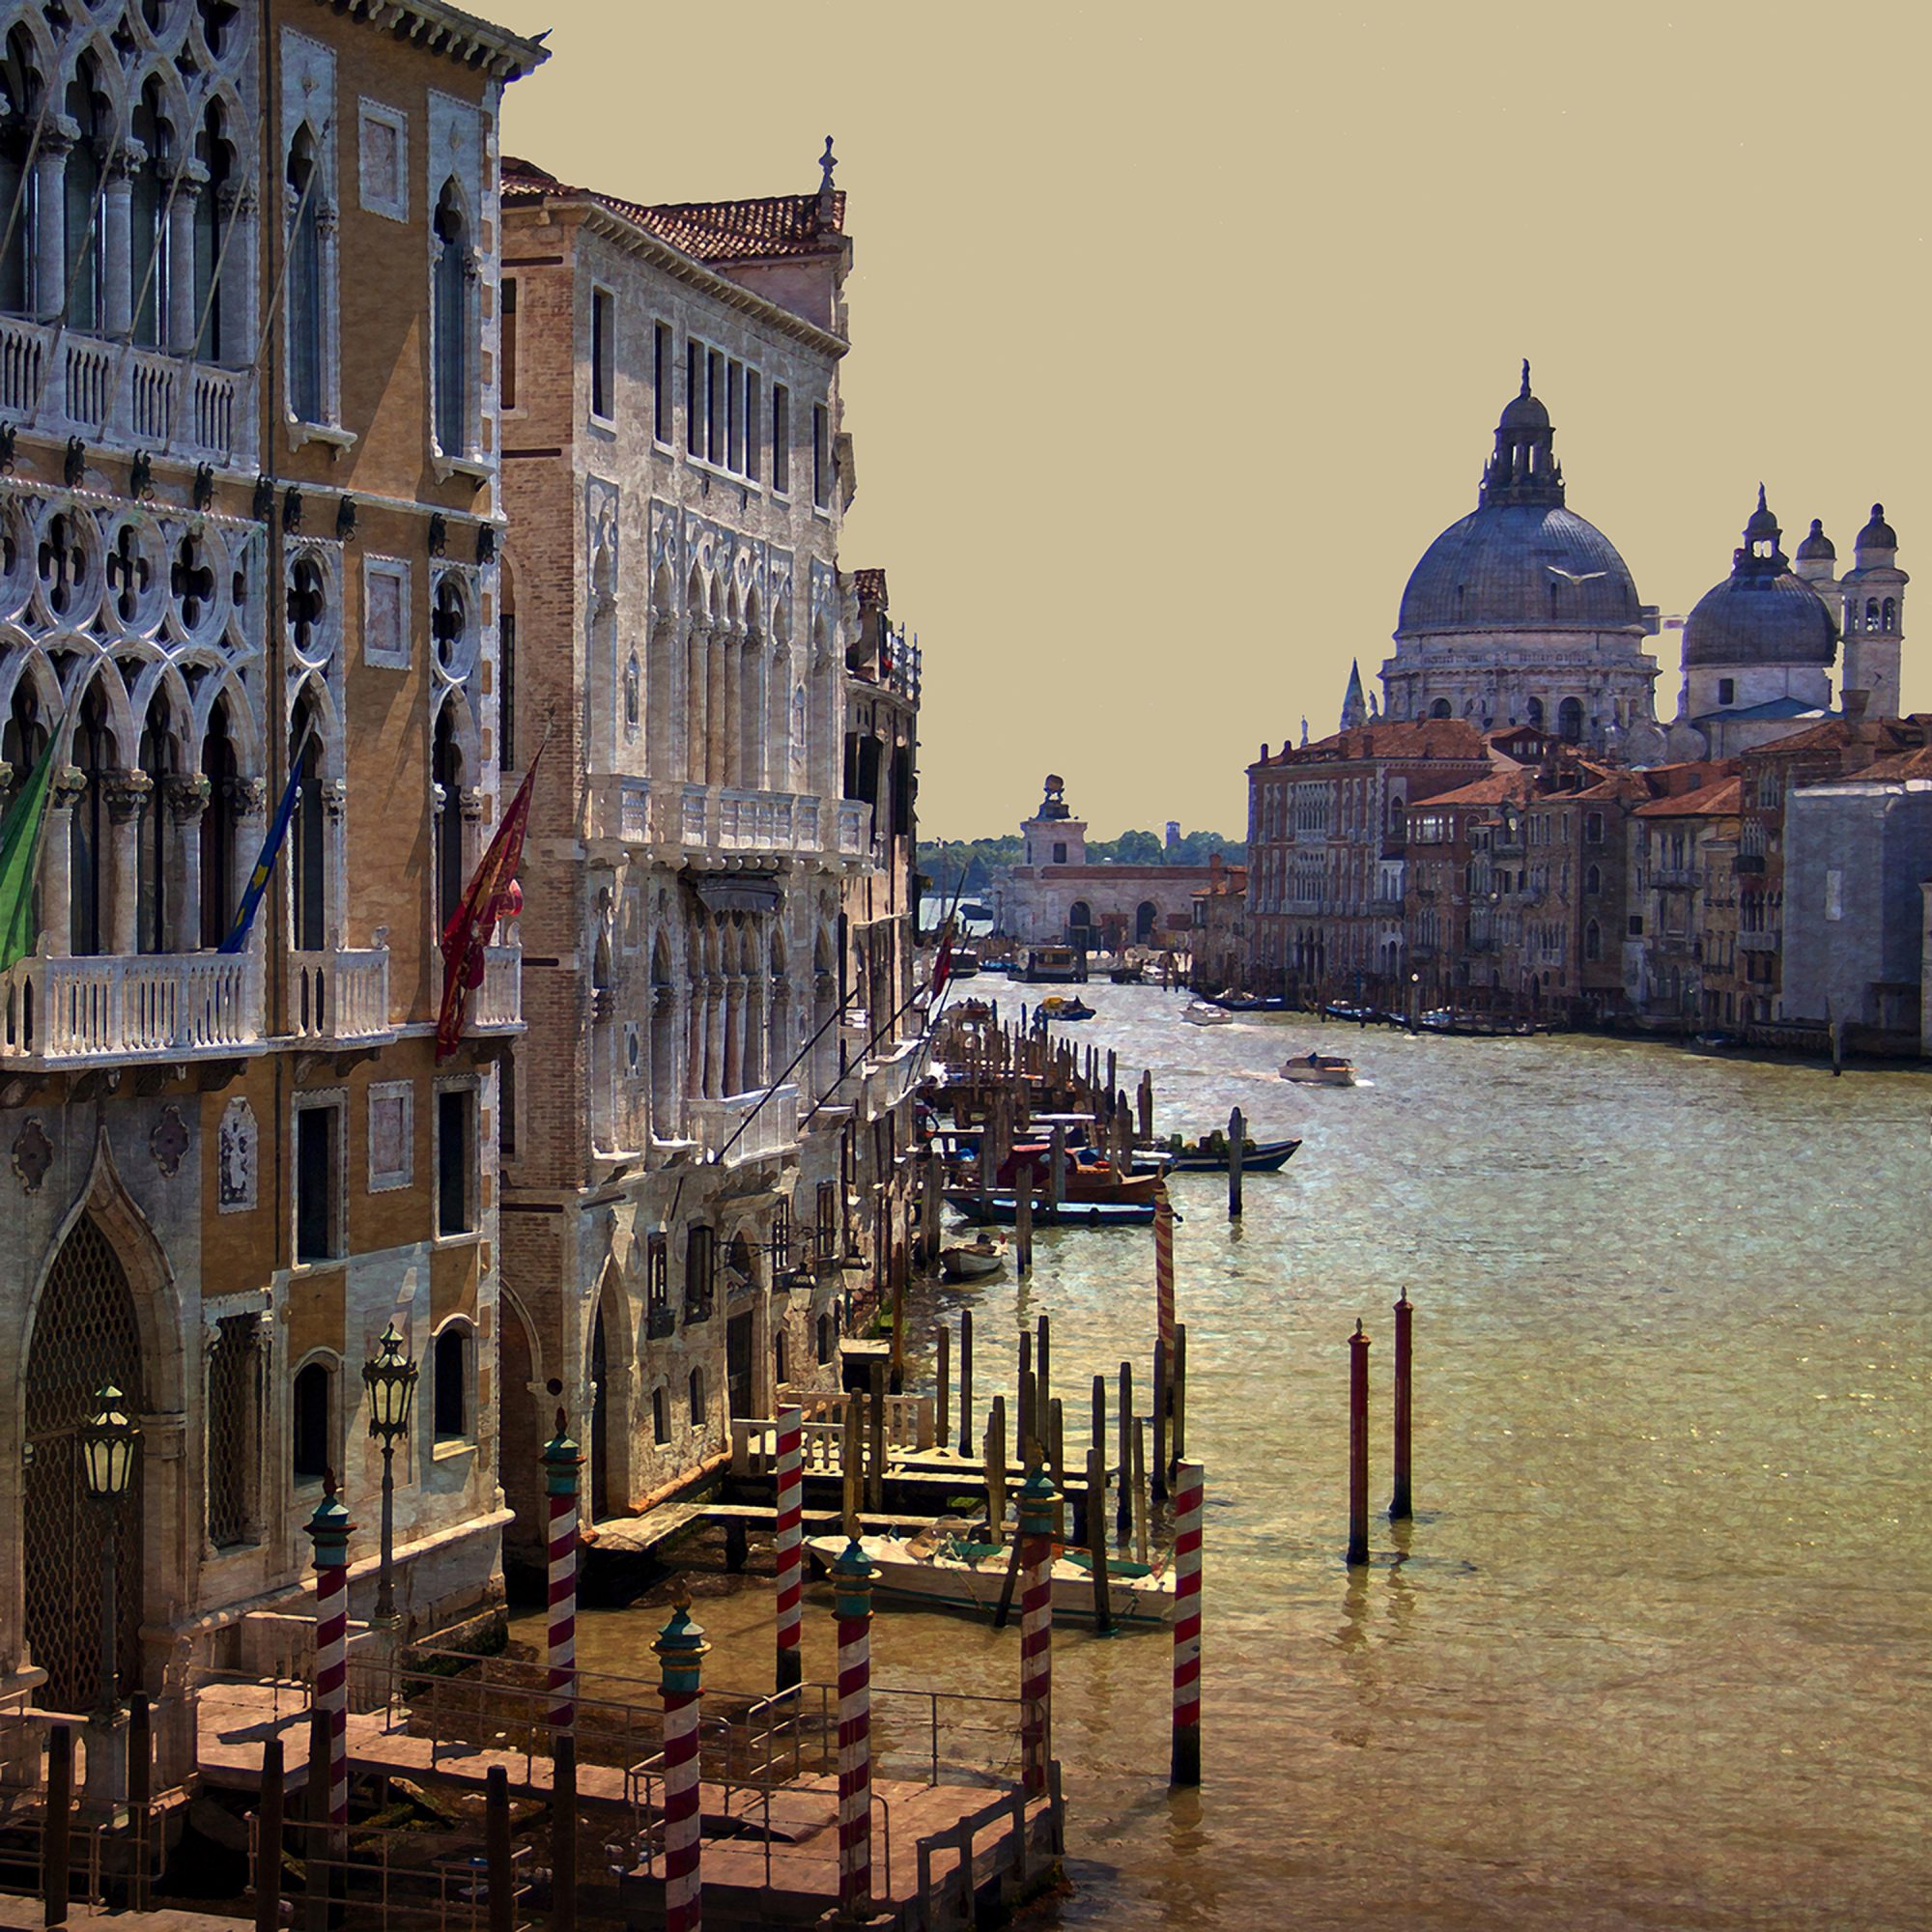 pcf1215sq-the-grand-canal-art-pharmacy